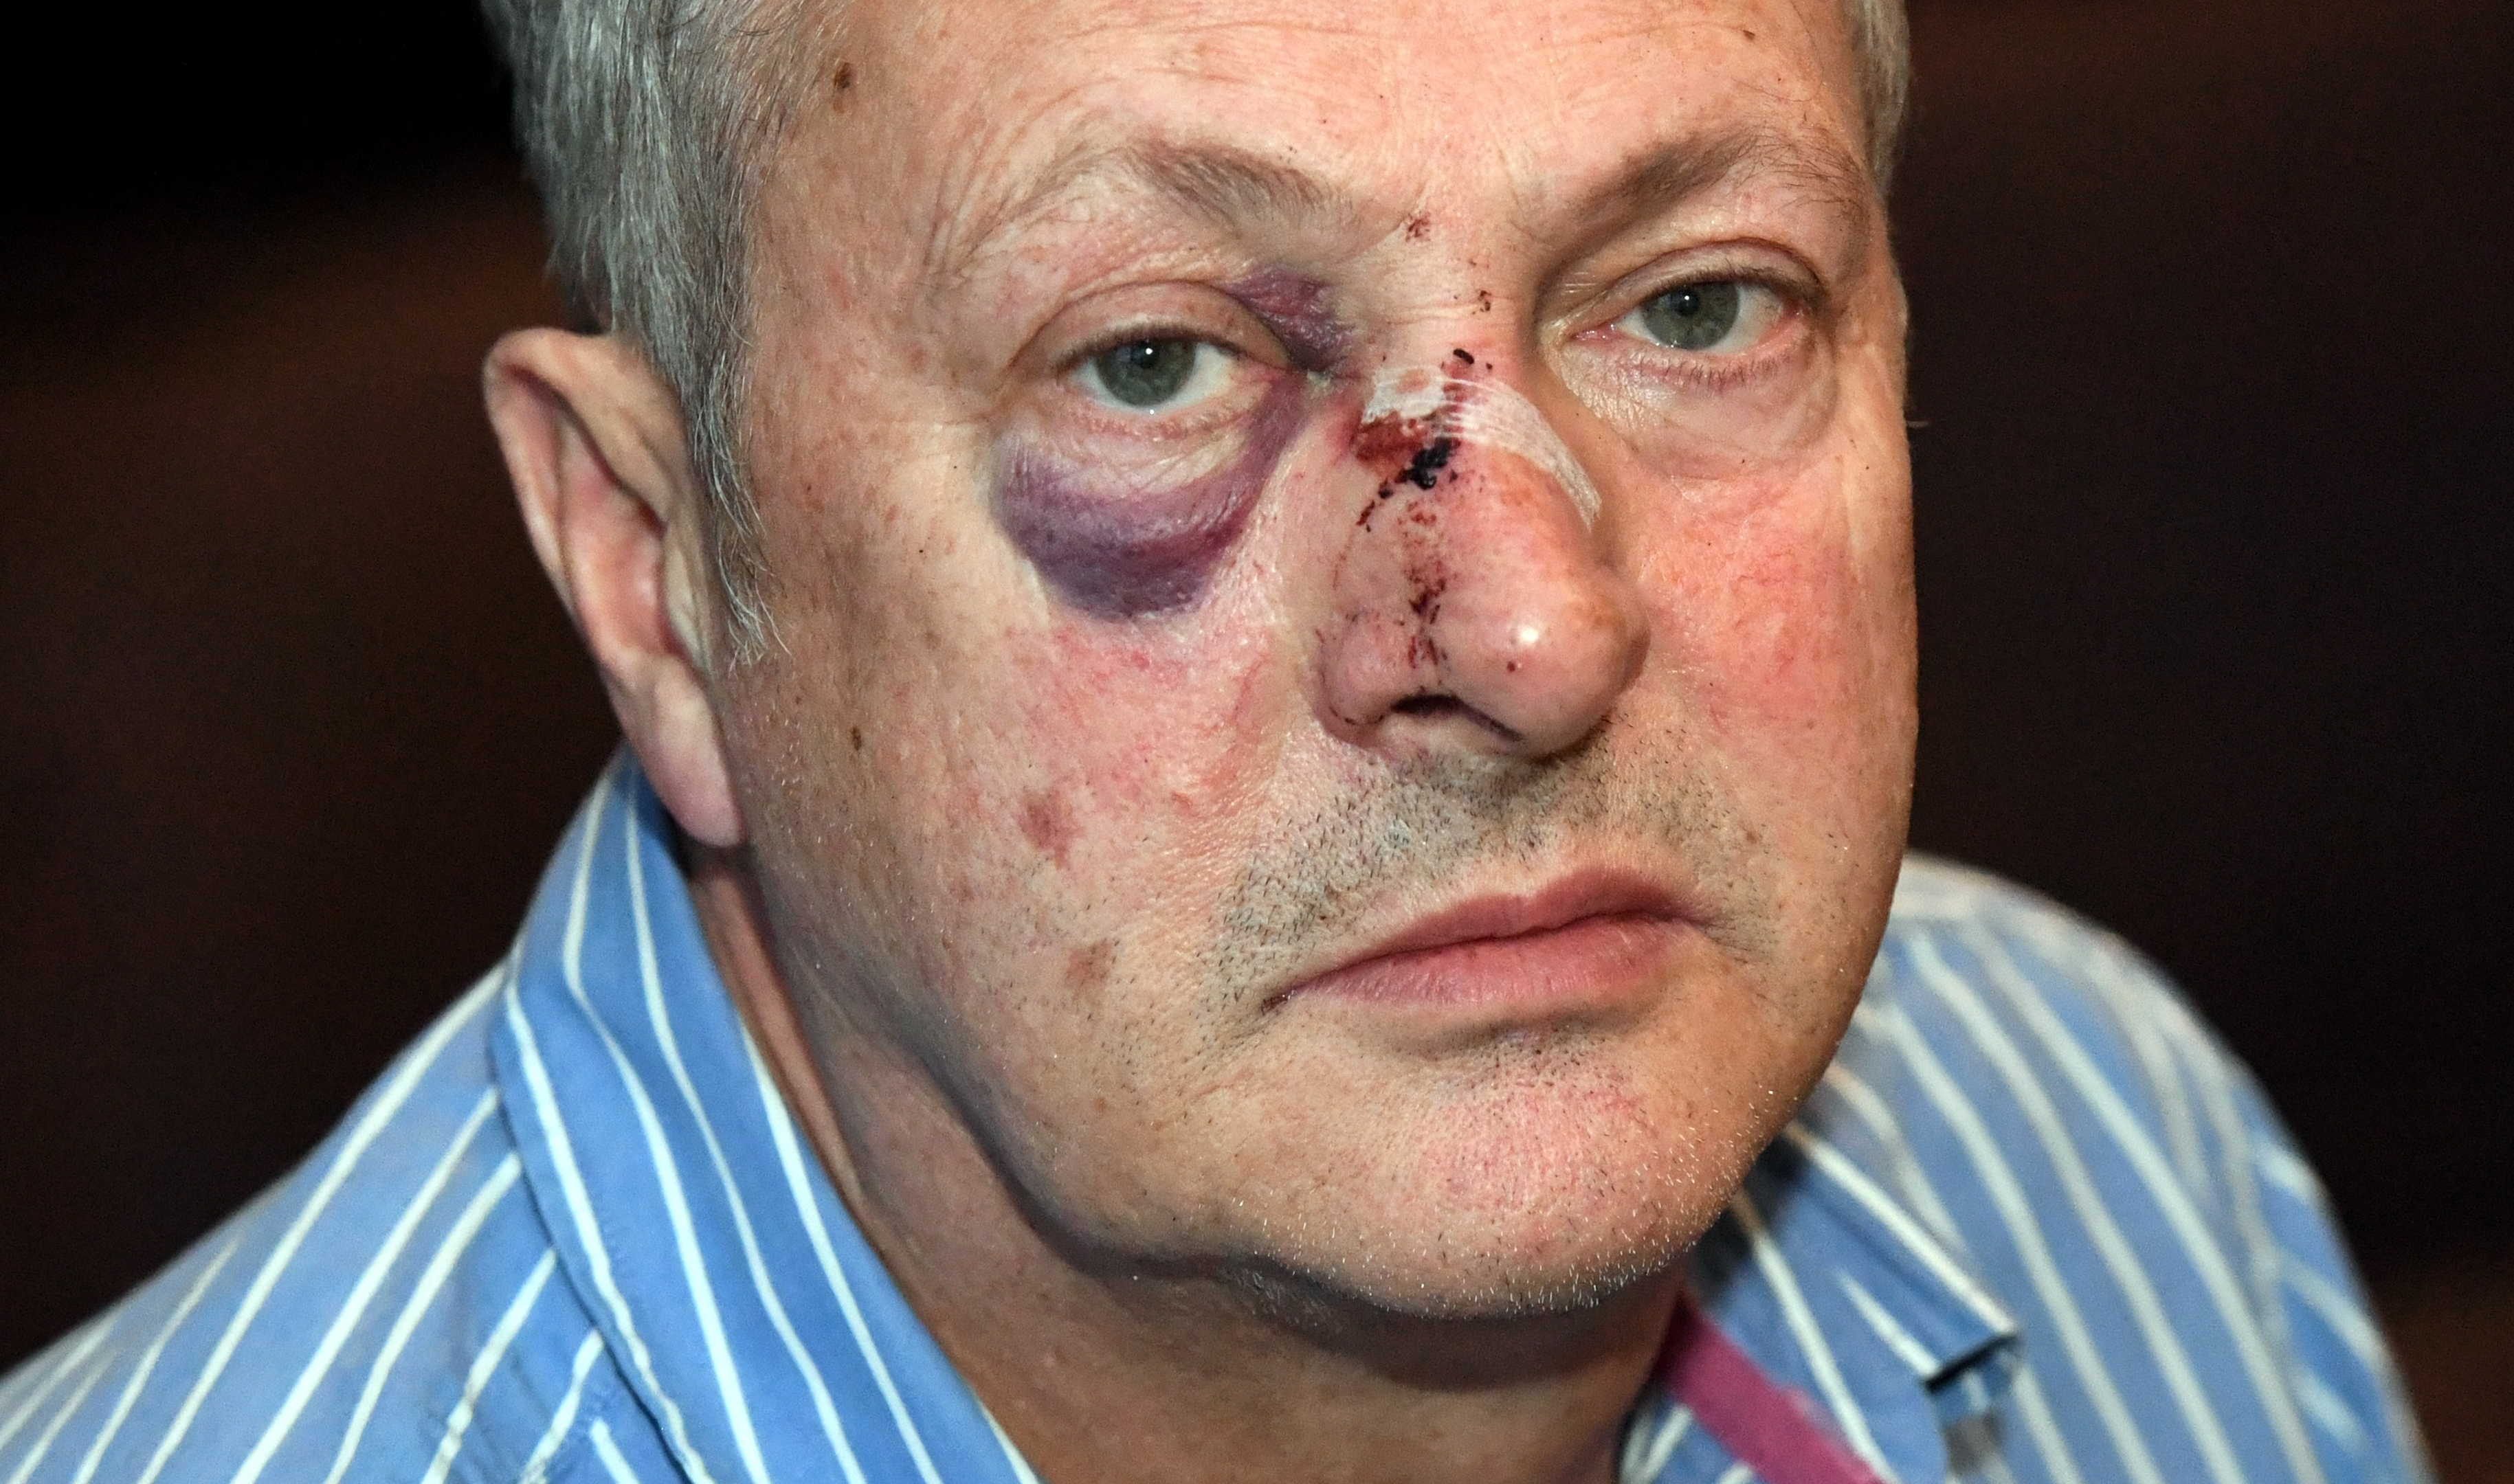 Chef Nick Nairn was attacked on Union Street, Aberdeen.